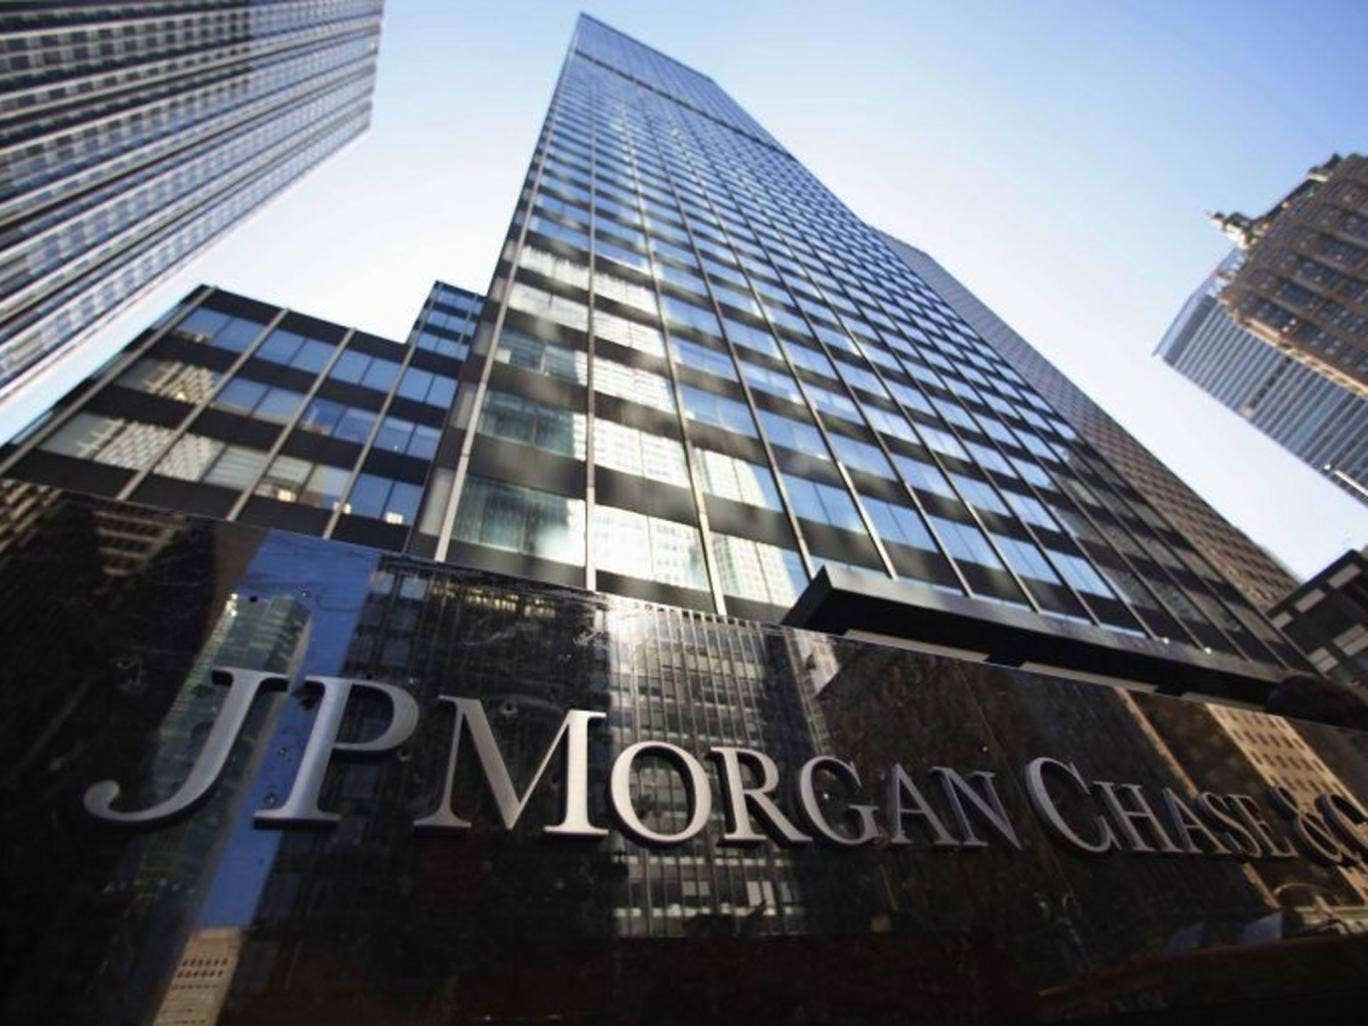 The JPMorgan Chase & Co. headquarters in New York. The bank is set to agree a $13bn compensation deal with the US Justice Department